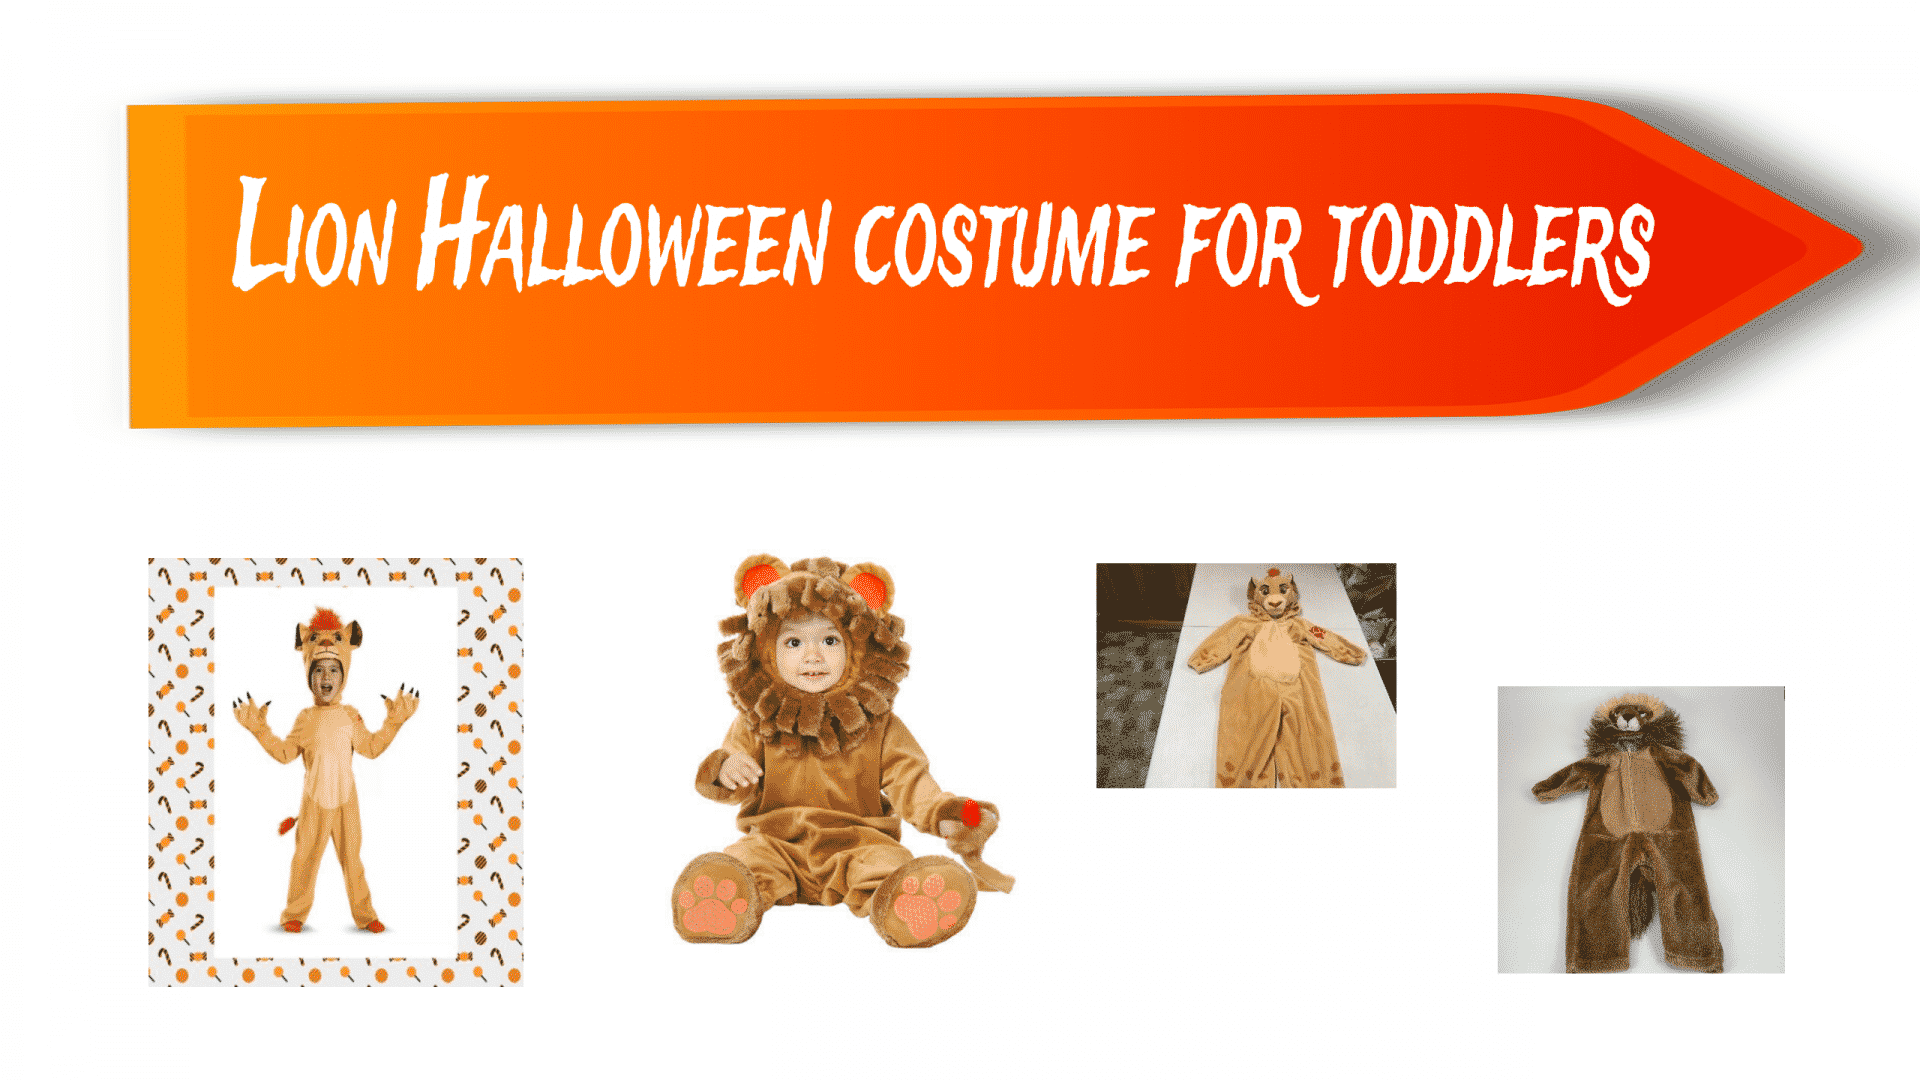 Lion Halloween costume for toddlers